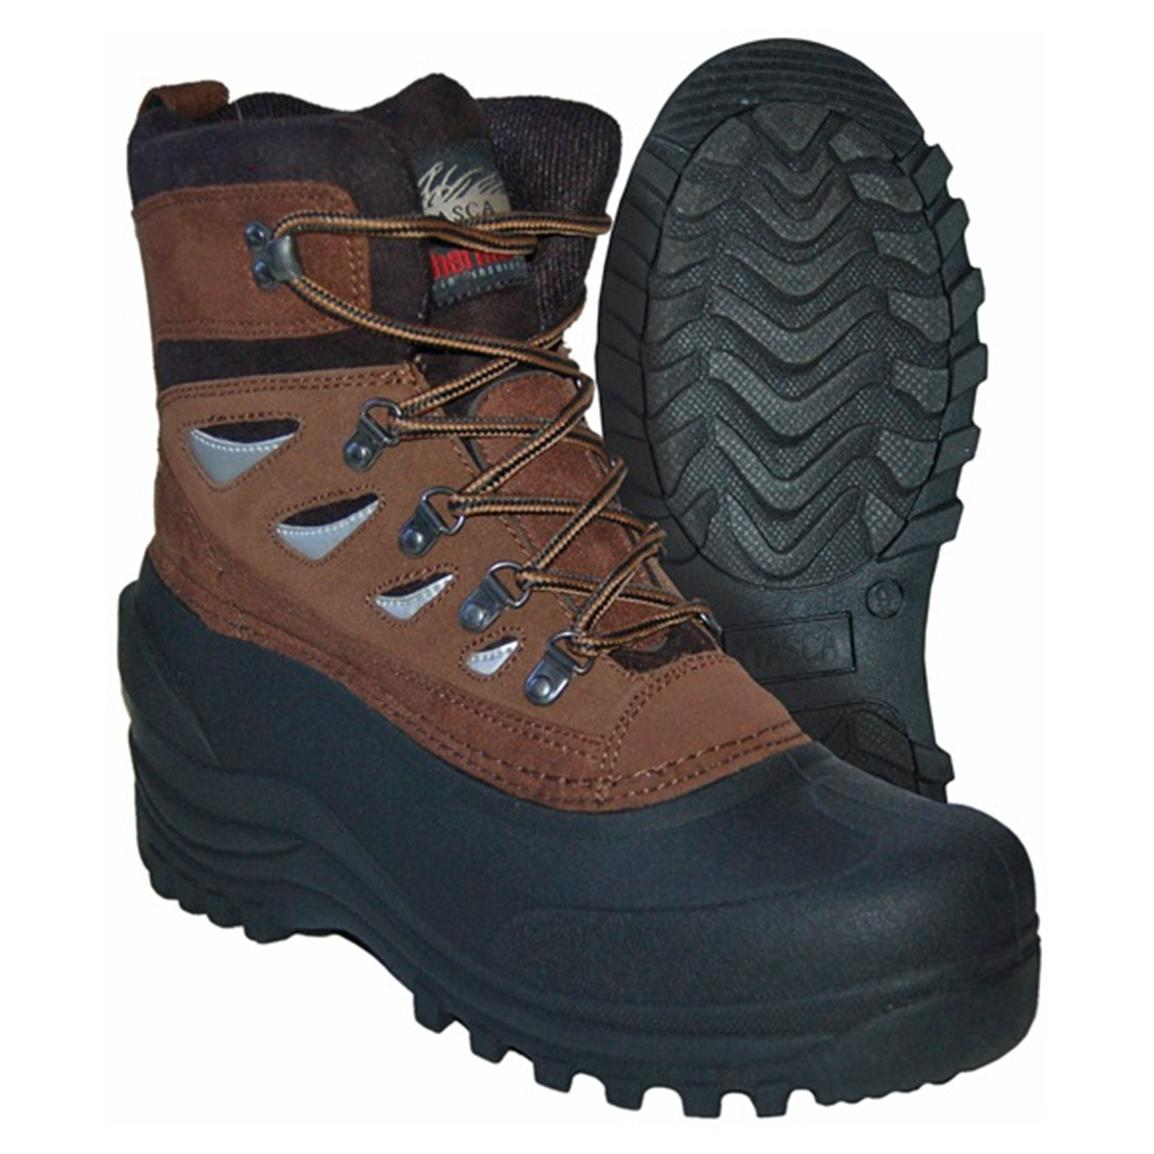 Men's Itasca™ Alta Thermolite® Insulated Boots